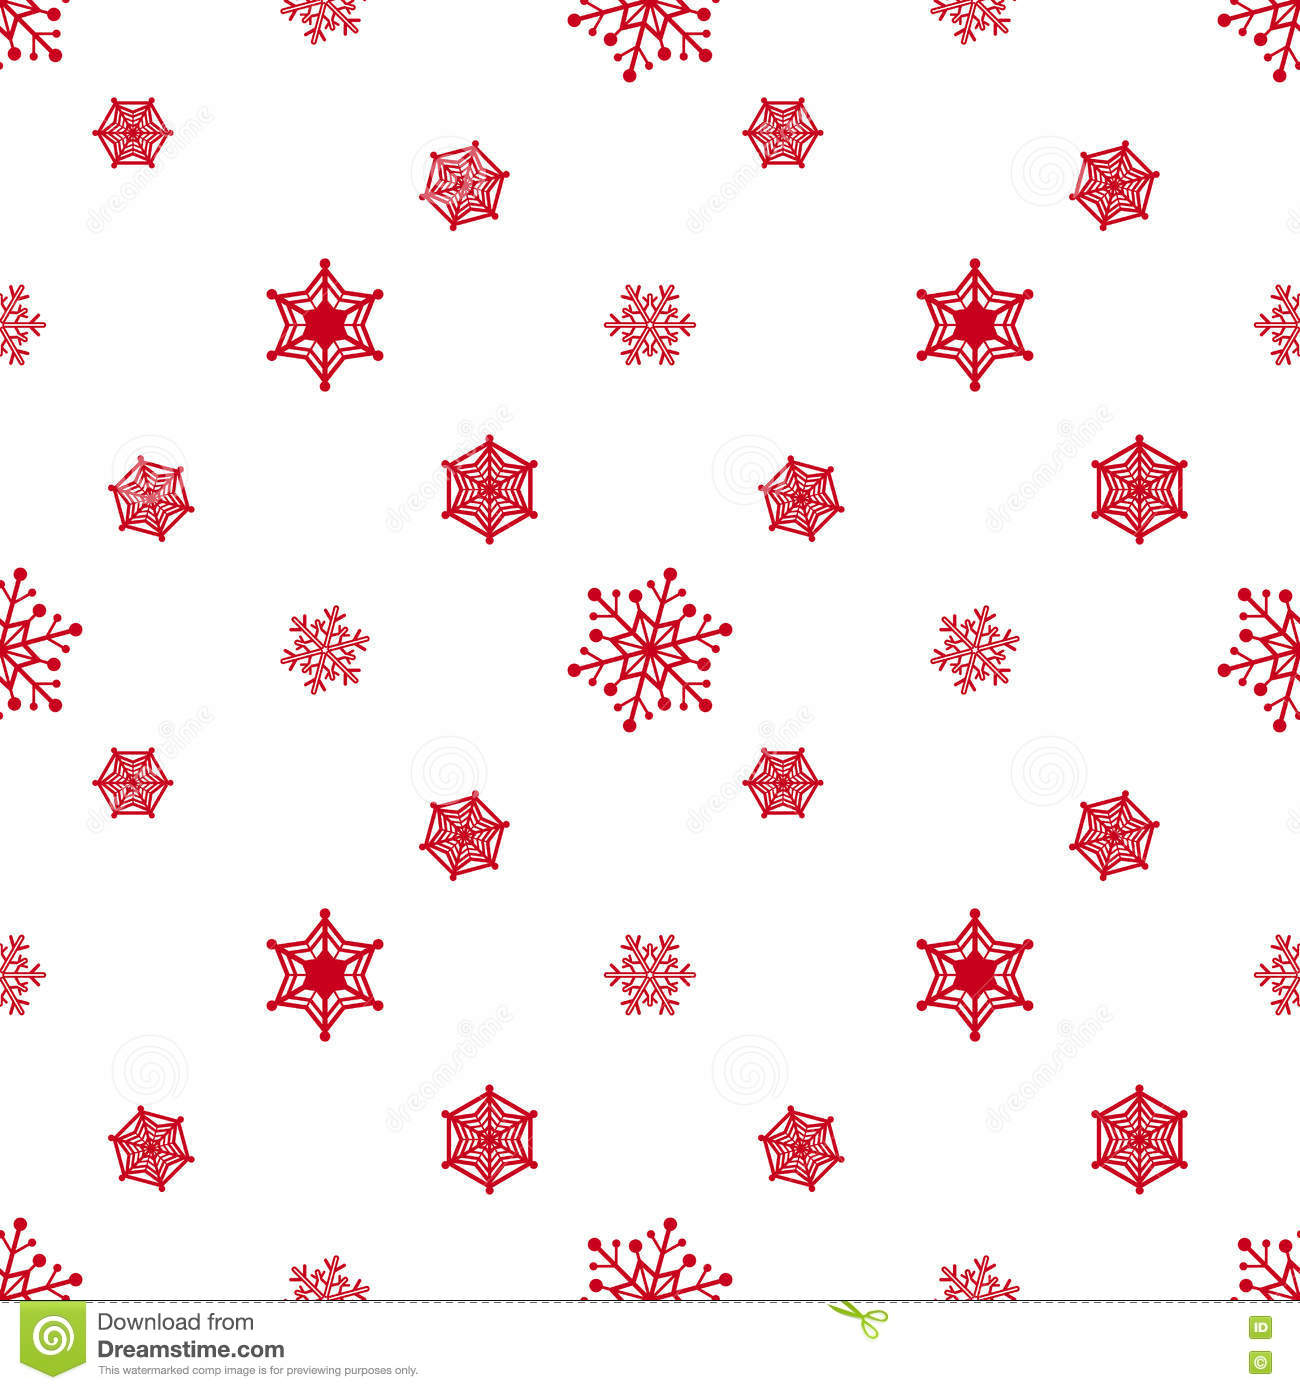 Red And White Patterned Wallpaper: Snowflake Red White Background Stock Vector